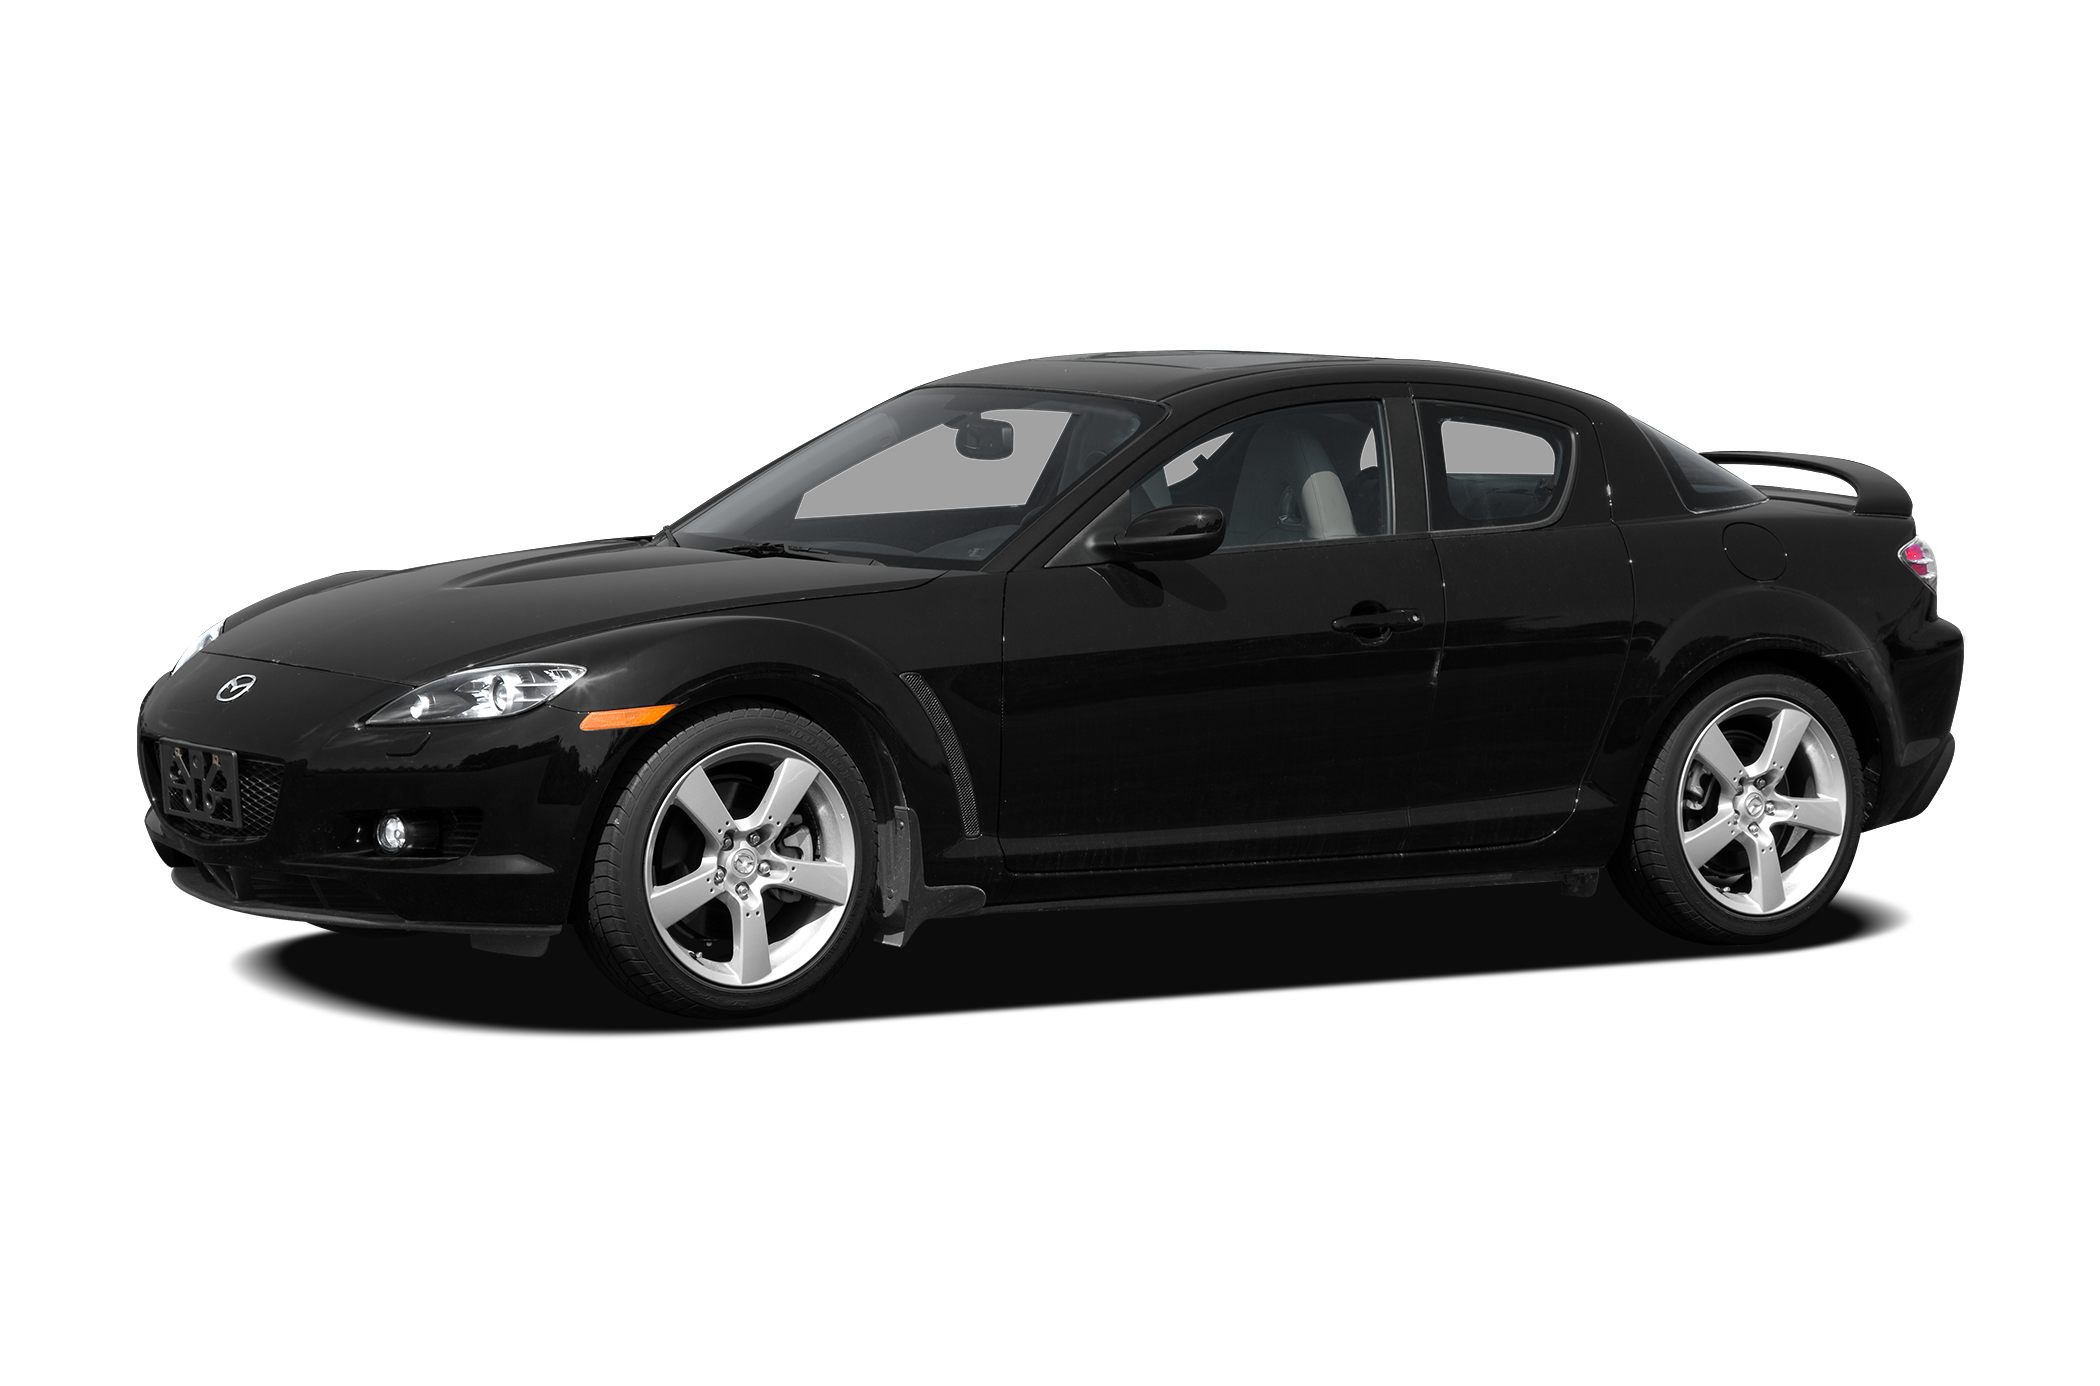 Younker Nissan Renton 2008 Mitsubishi Eclipse SE V6 2dr Coupe Overview